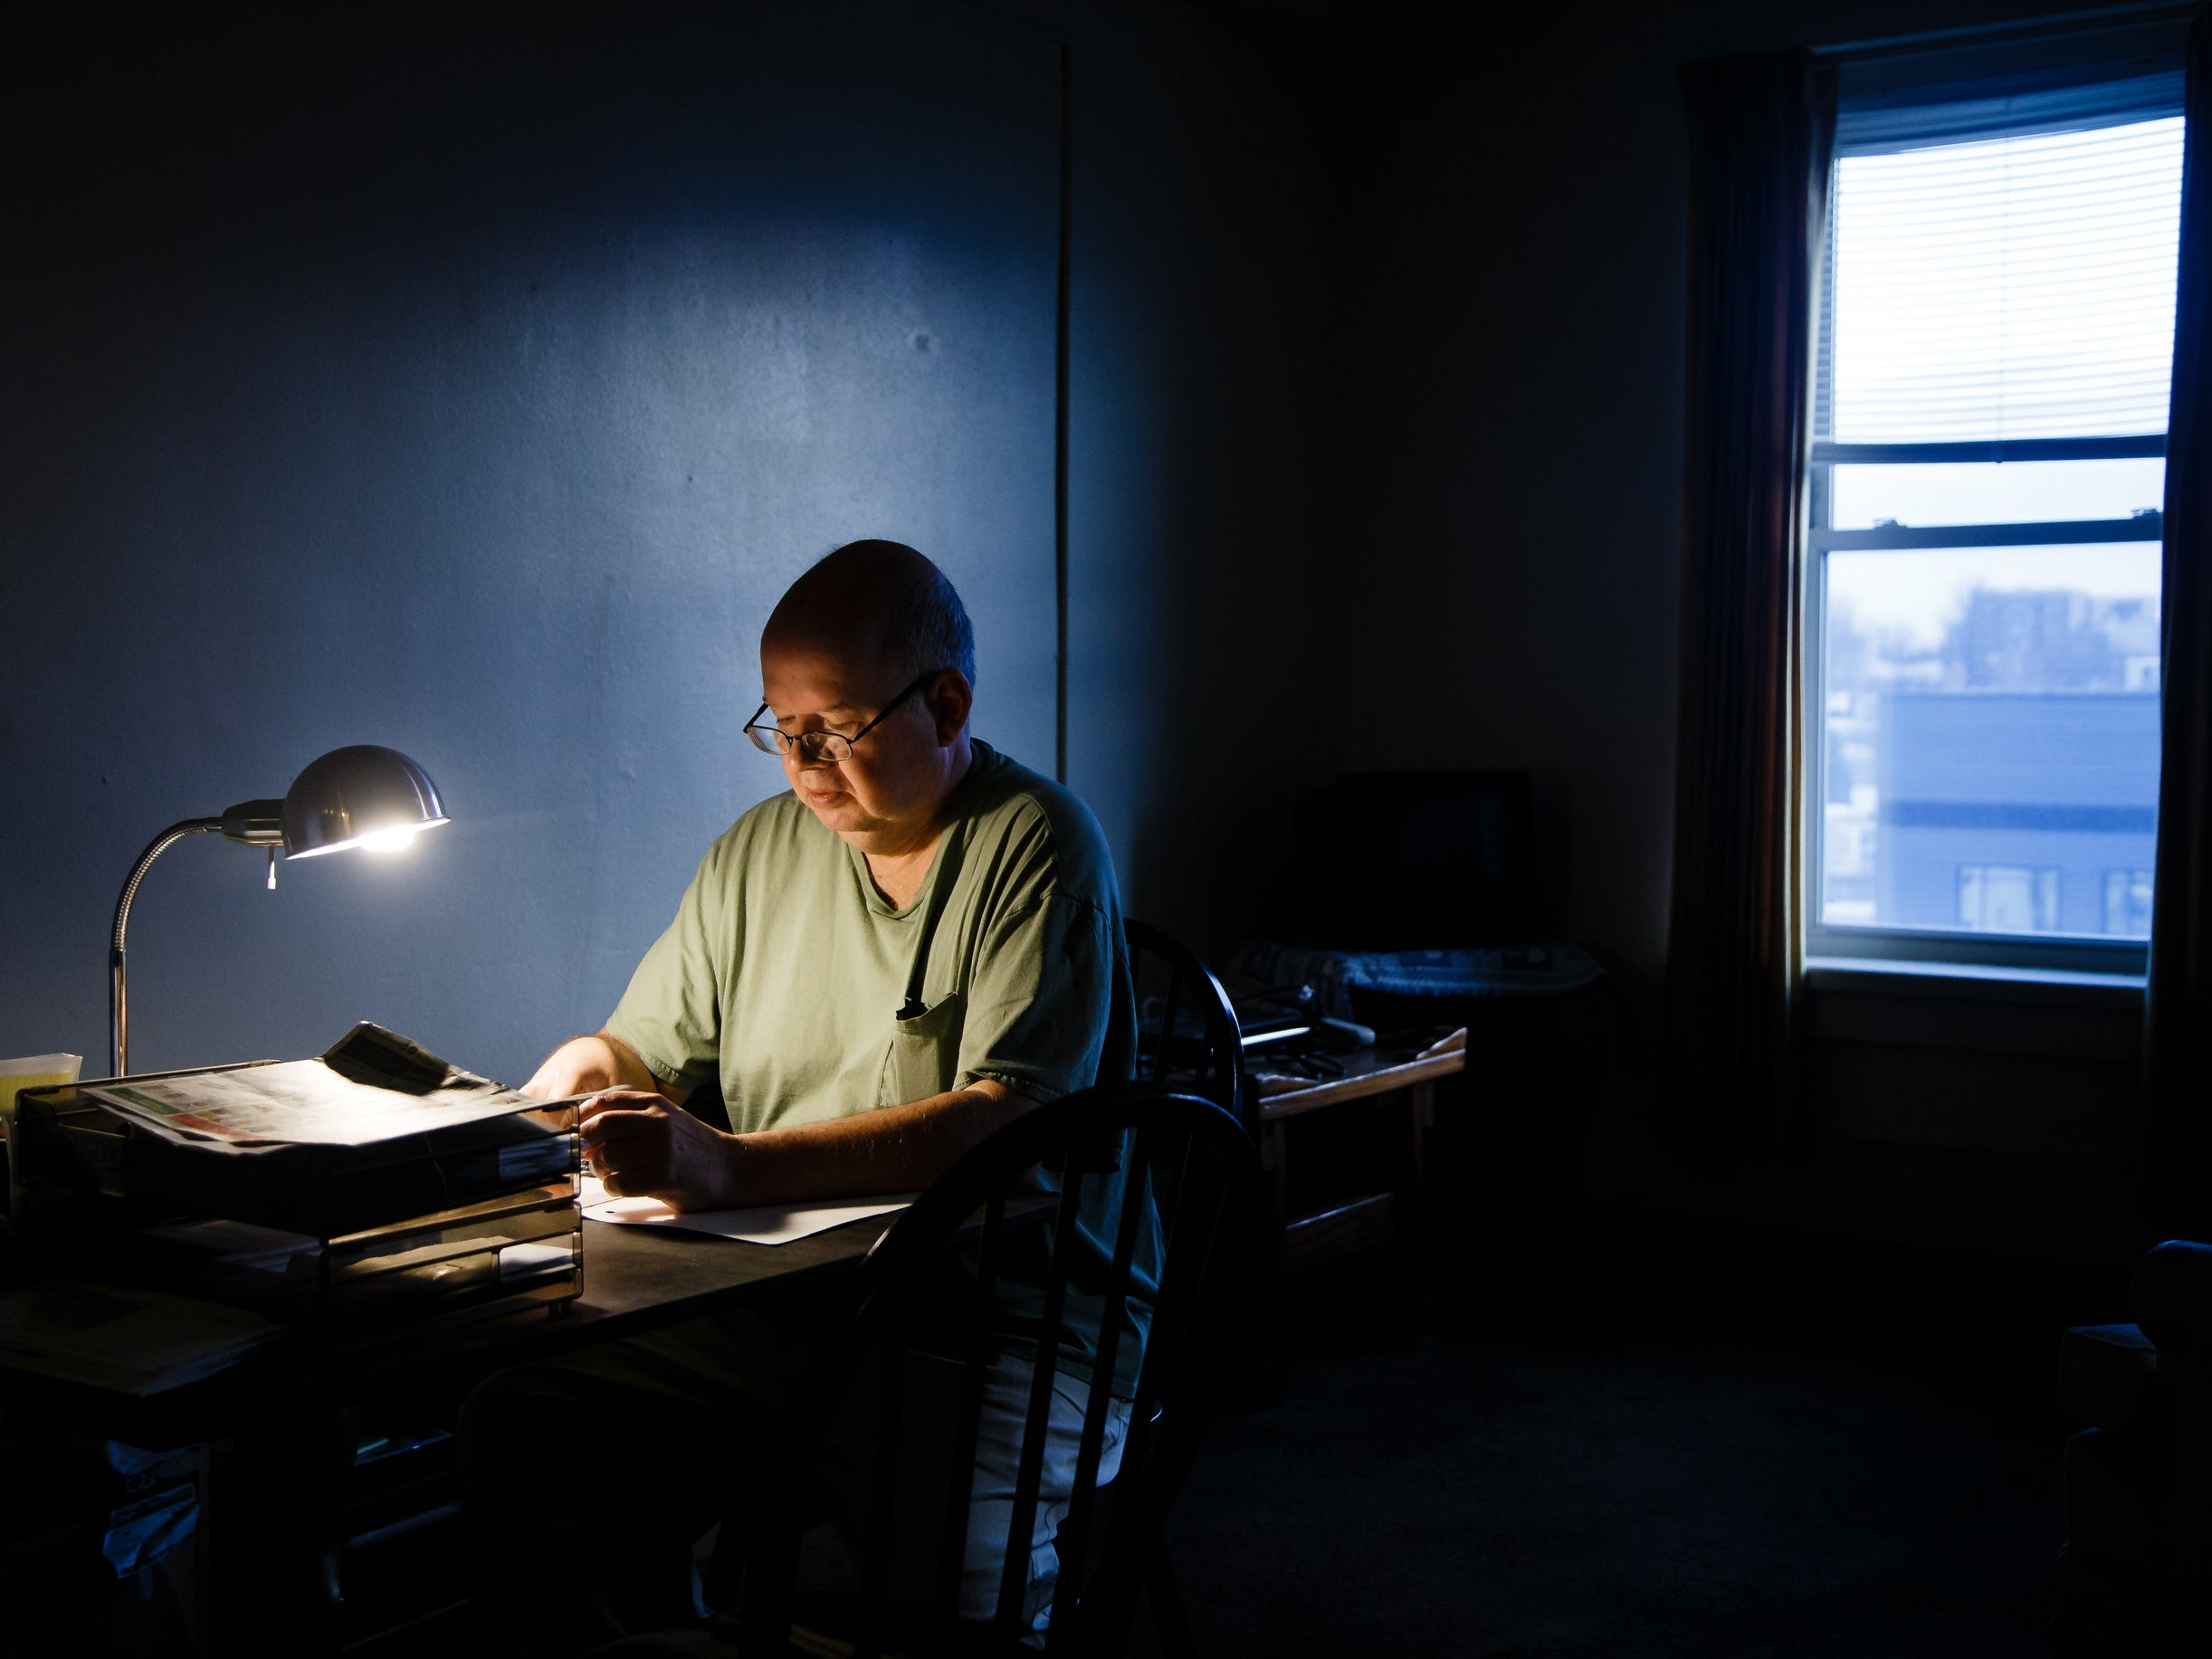 Tom Riordan, 57, sits down to write inside his apartment on Tuesday, Dec. 18, 2018, in Carroll. Riordan has schizophrenia but thanks to St. Anthony's inpatient psychiatric unit he can continue to live on his own and make the short trip there if he needs help coping with his chronic illness.